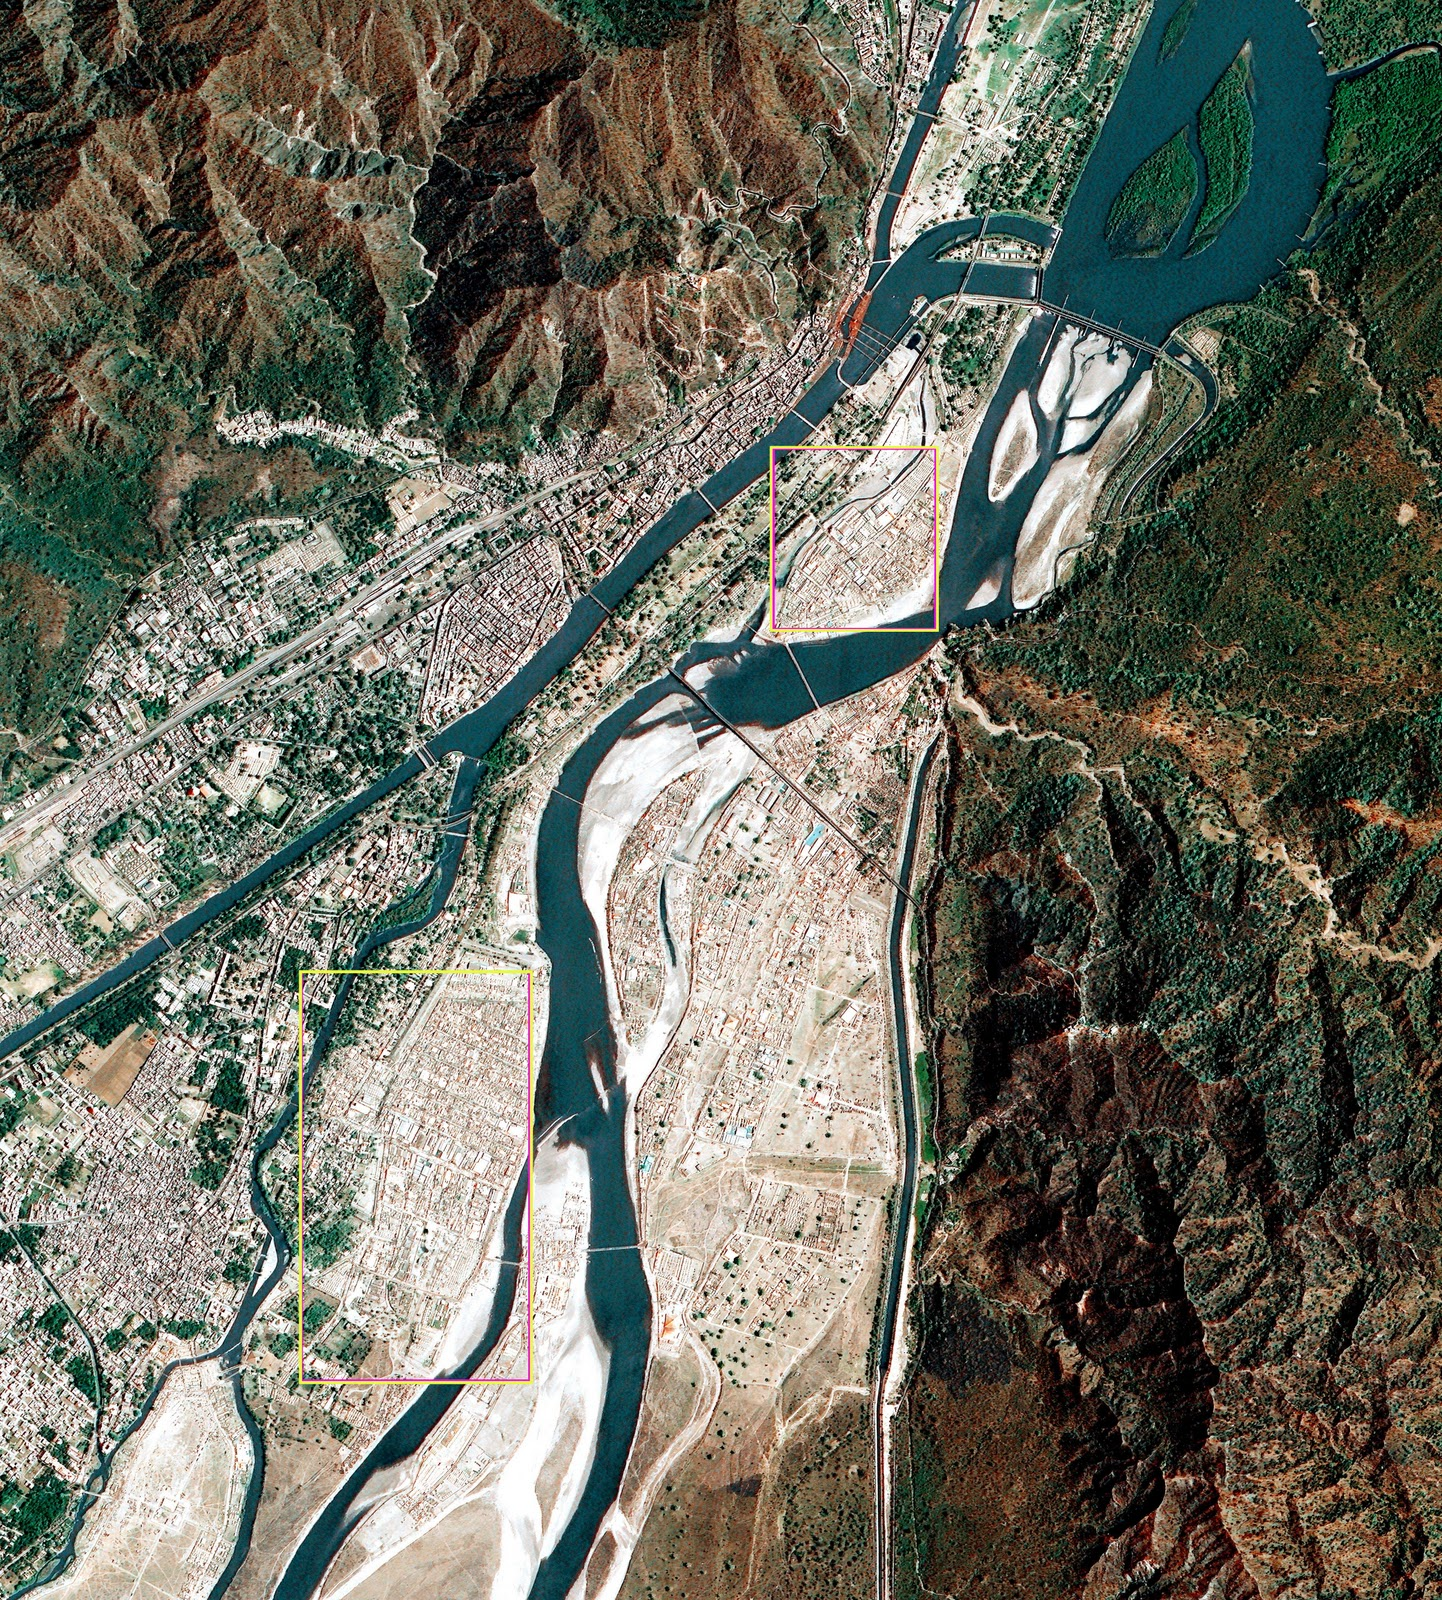 Satellite Image of Kumbh Mela 2010